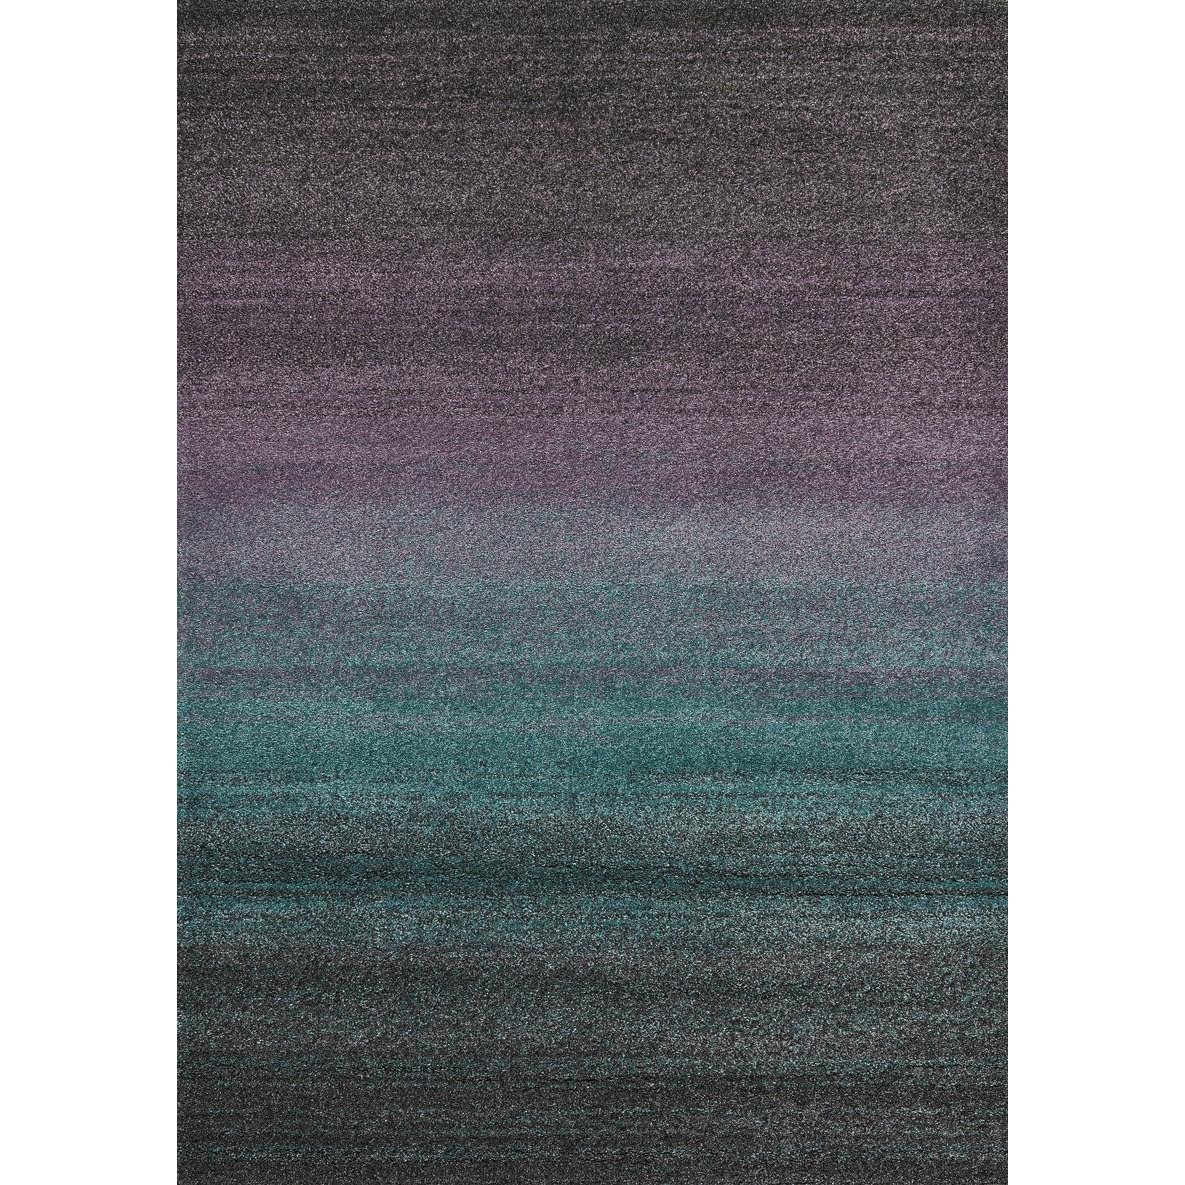 teal and grey area rug. 8 X 11 Large Purple And Gray Area Rug - Ashbury | RC Willey Furniture Store Teal Grey Y